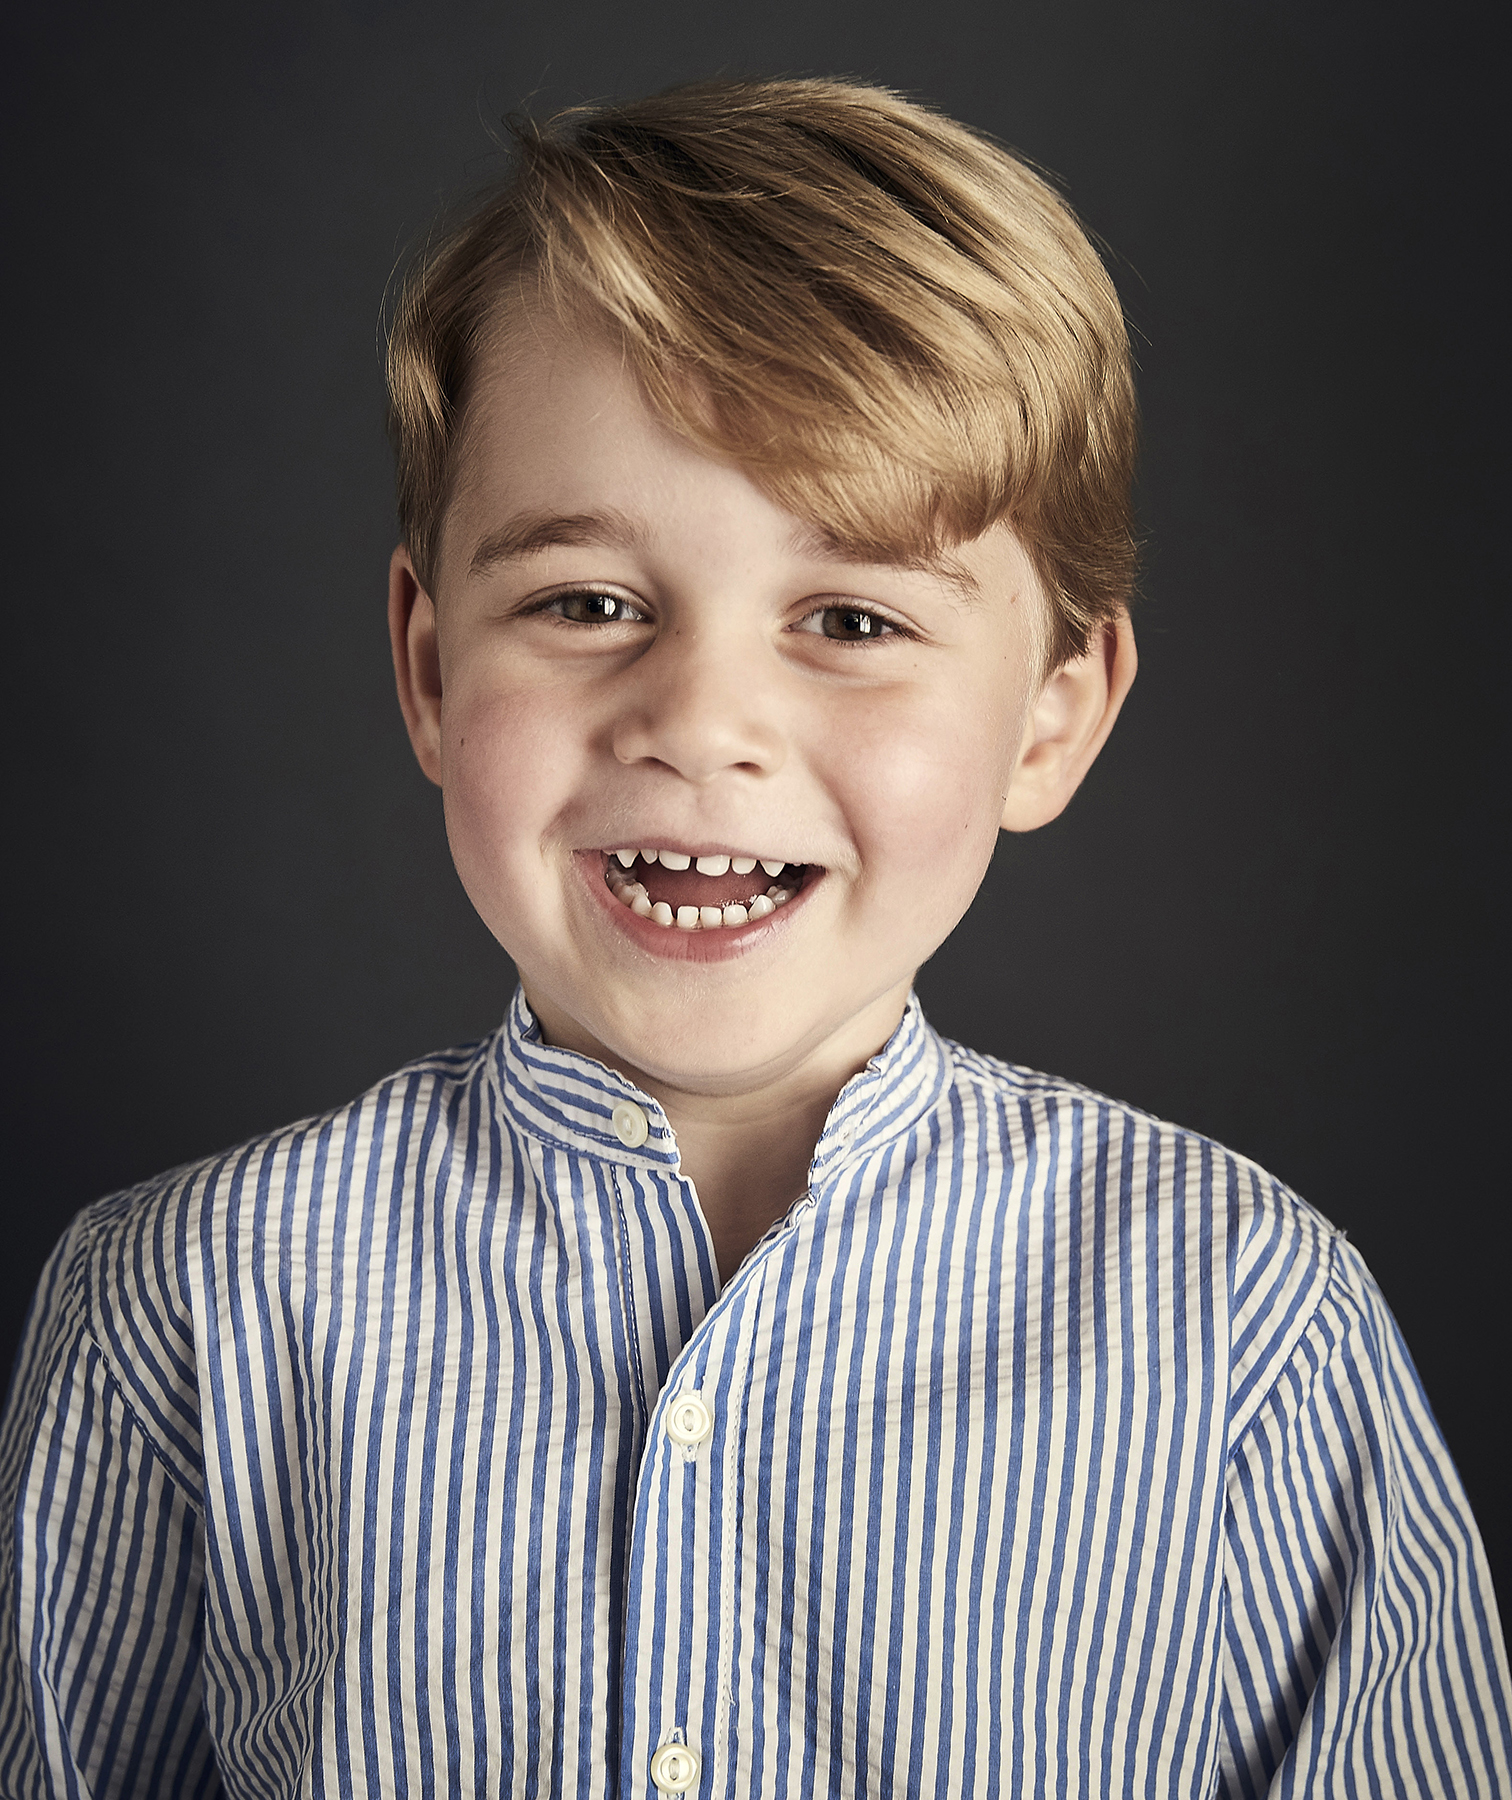 Prince George 4th Birthday Portrait